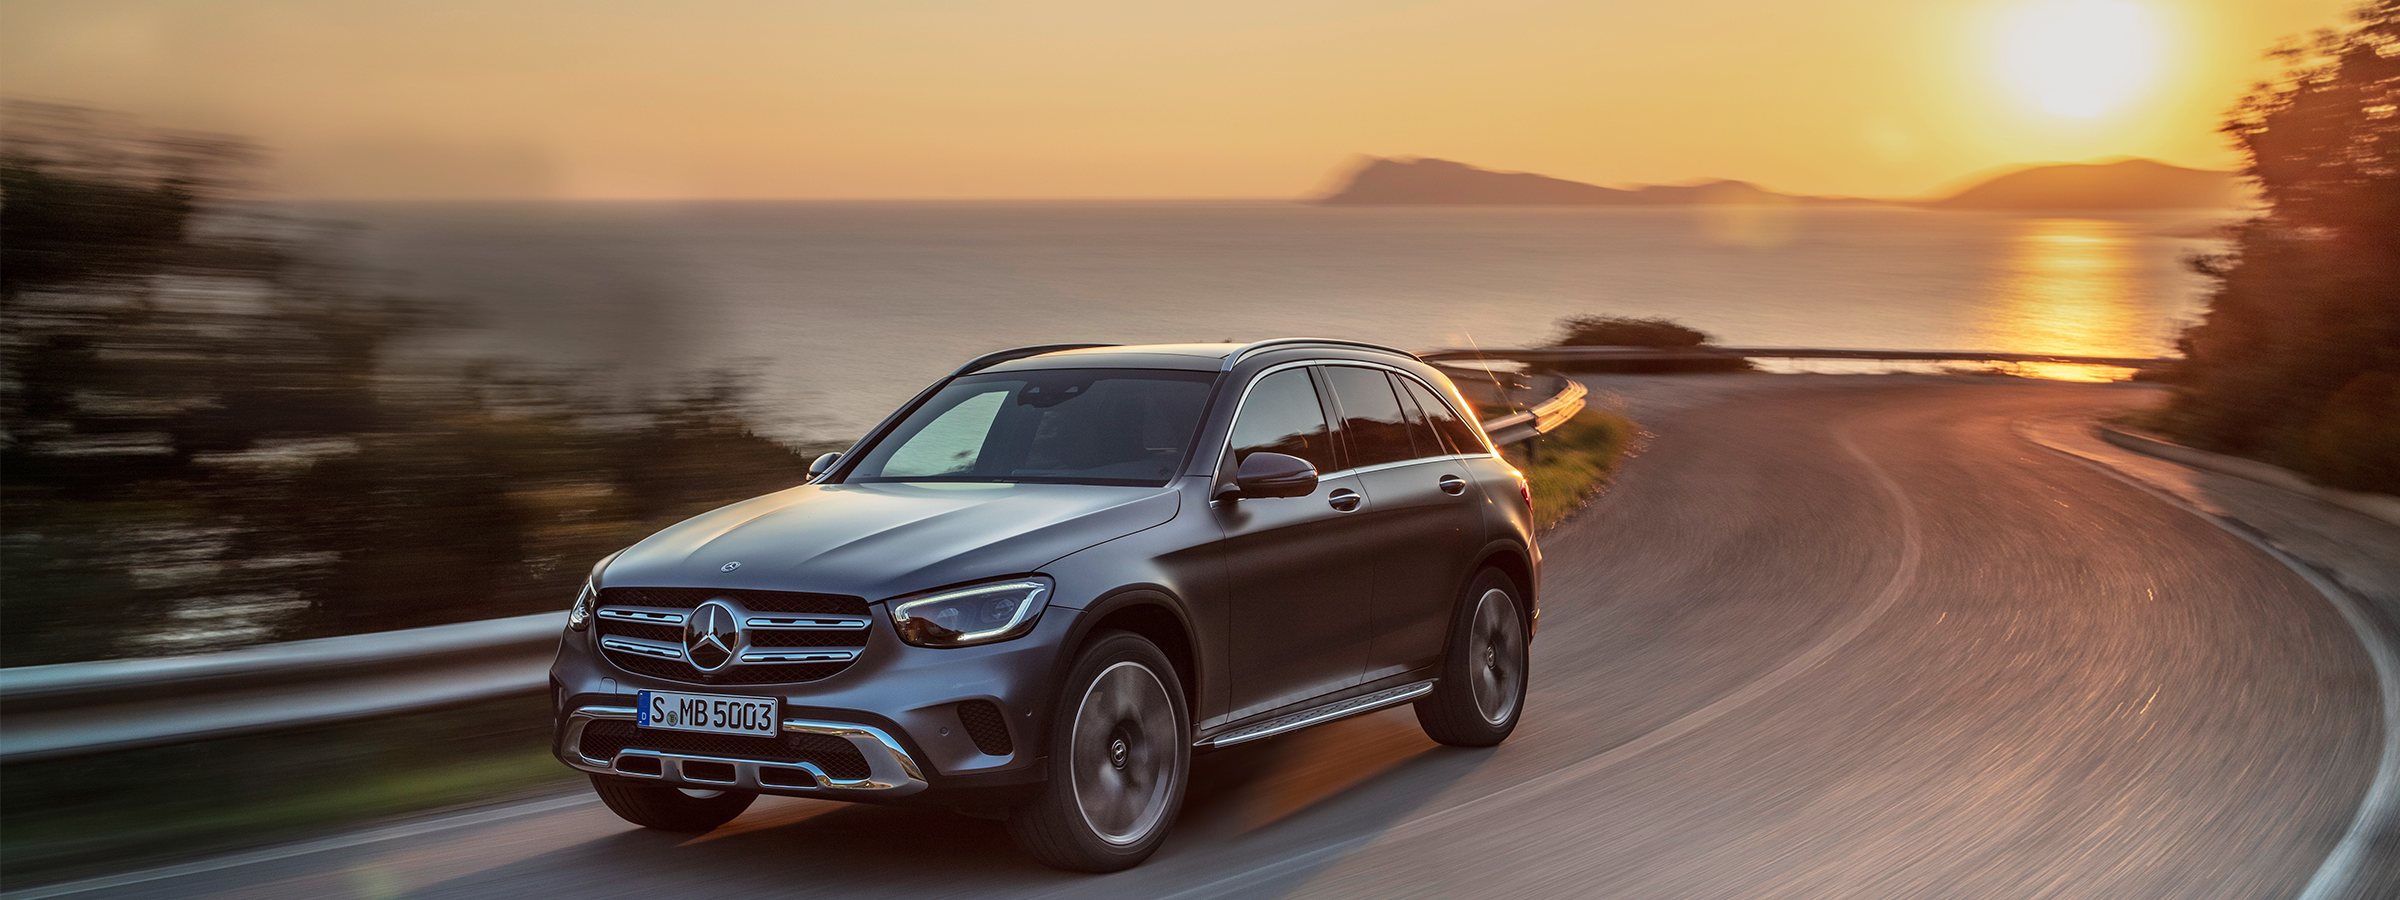 43 The 2020 Mercedes Glc Spy Shoot